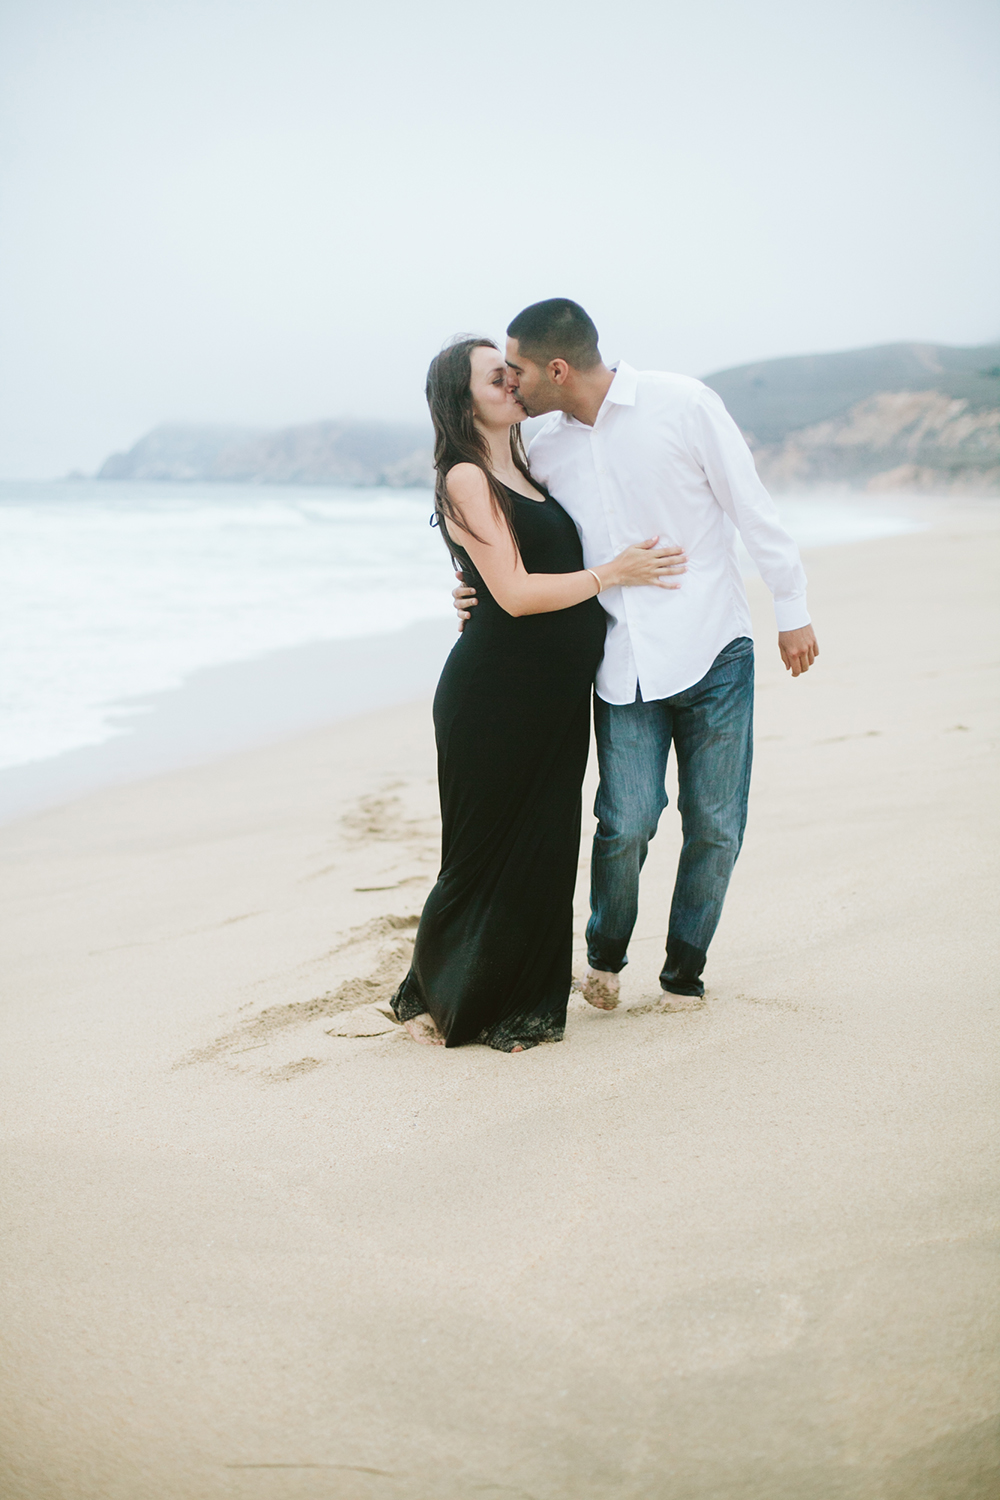 half-moon-bay-beach-maternity-session-21.html